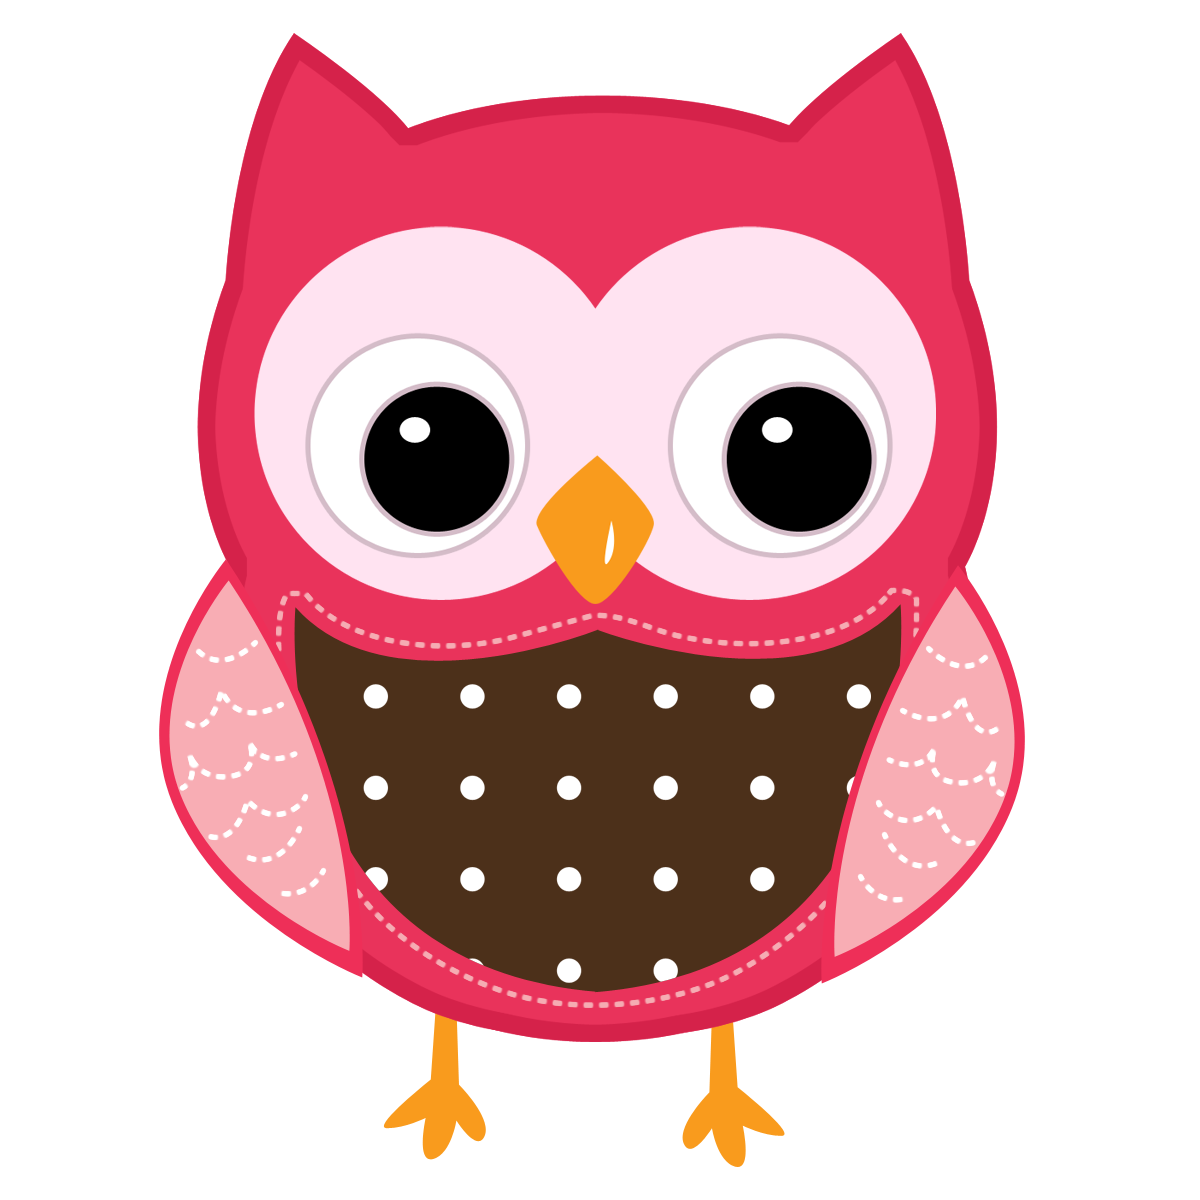 Free download clip art. Clipart owl high resolution